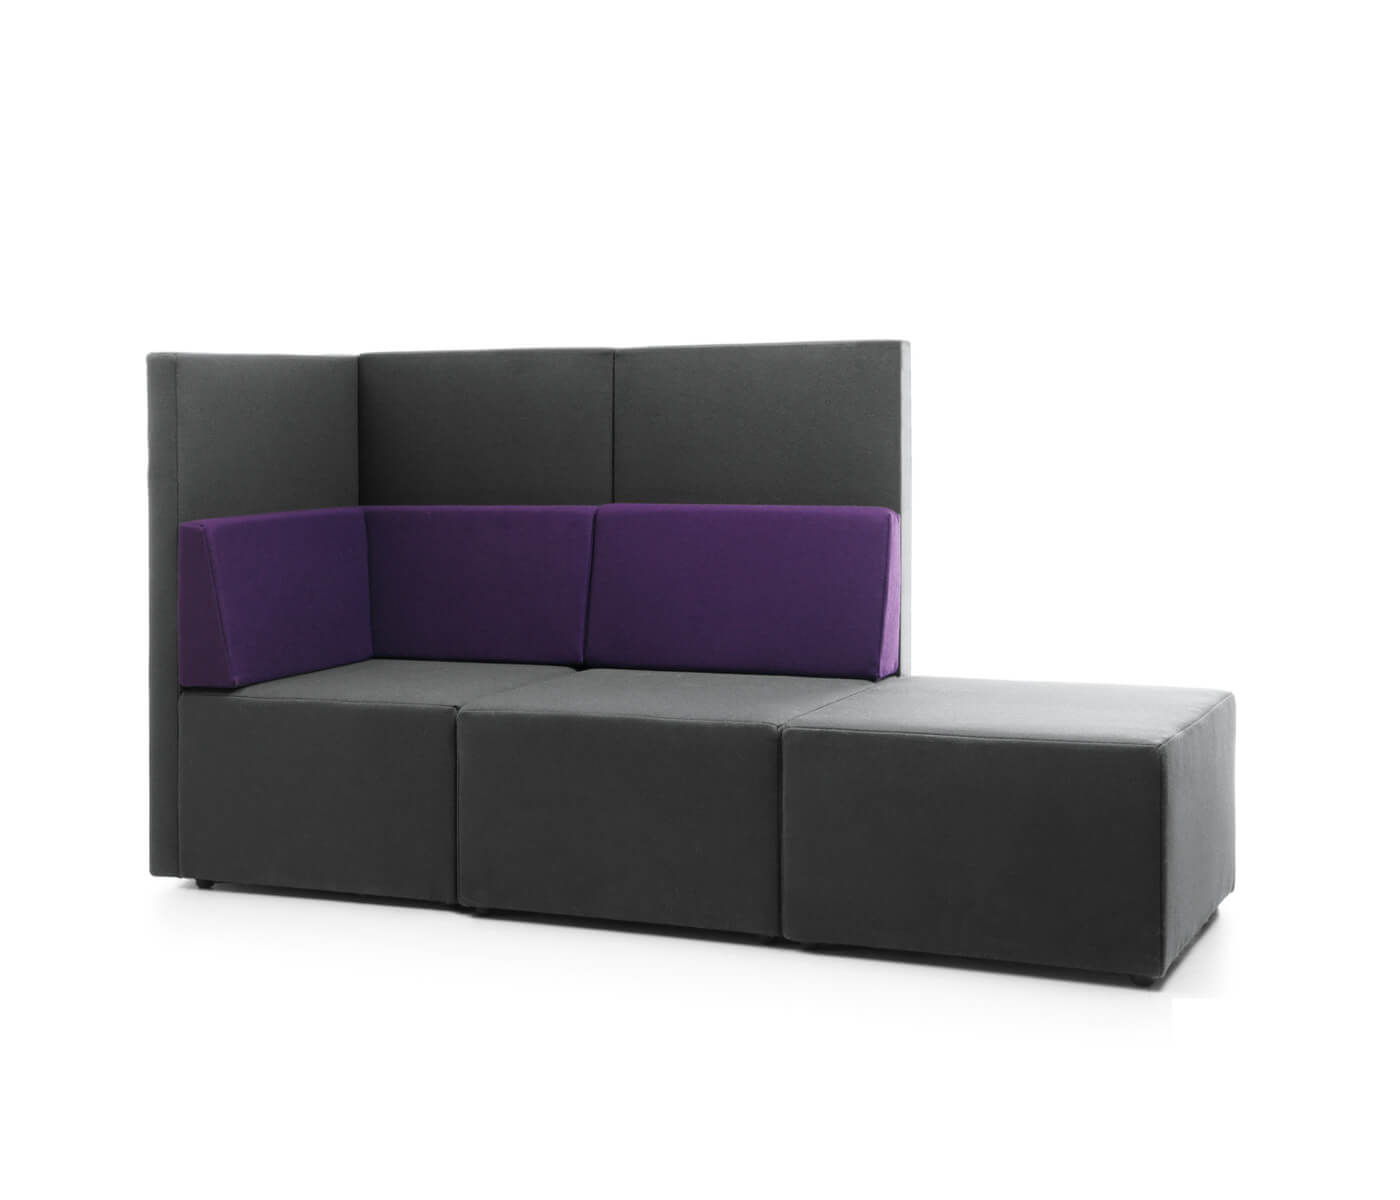 loungesofa mit hoher lehne moderne loungem bel b rom bel. Black Bedroom Furniture Sets. Home Design Ideas